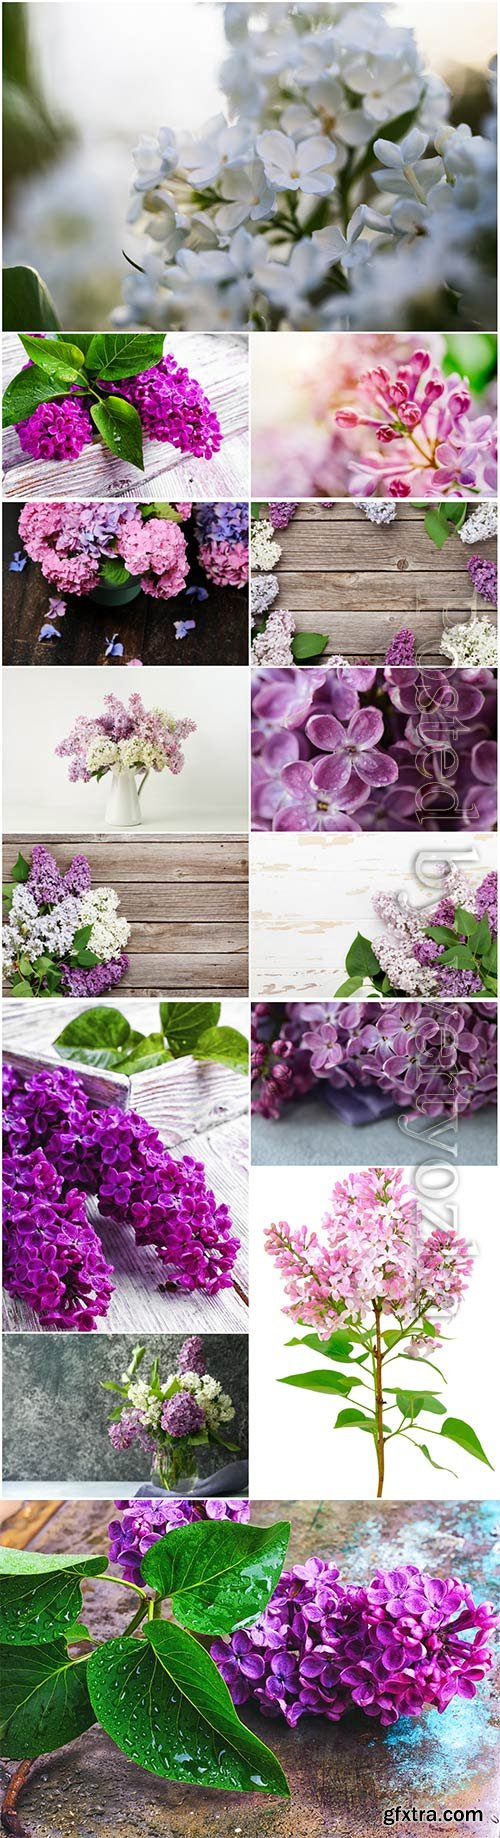 Lilac branches beautiful stock photo